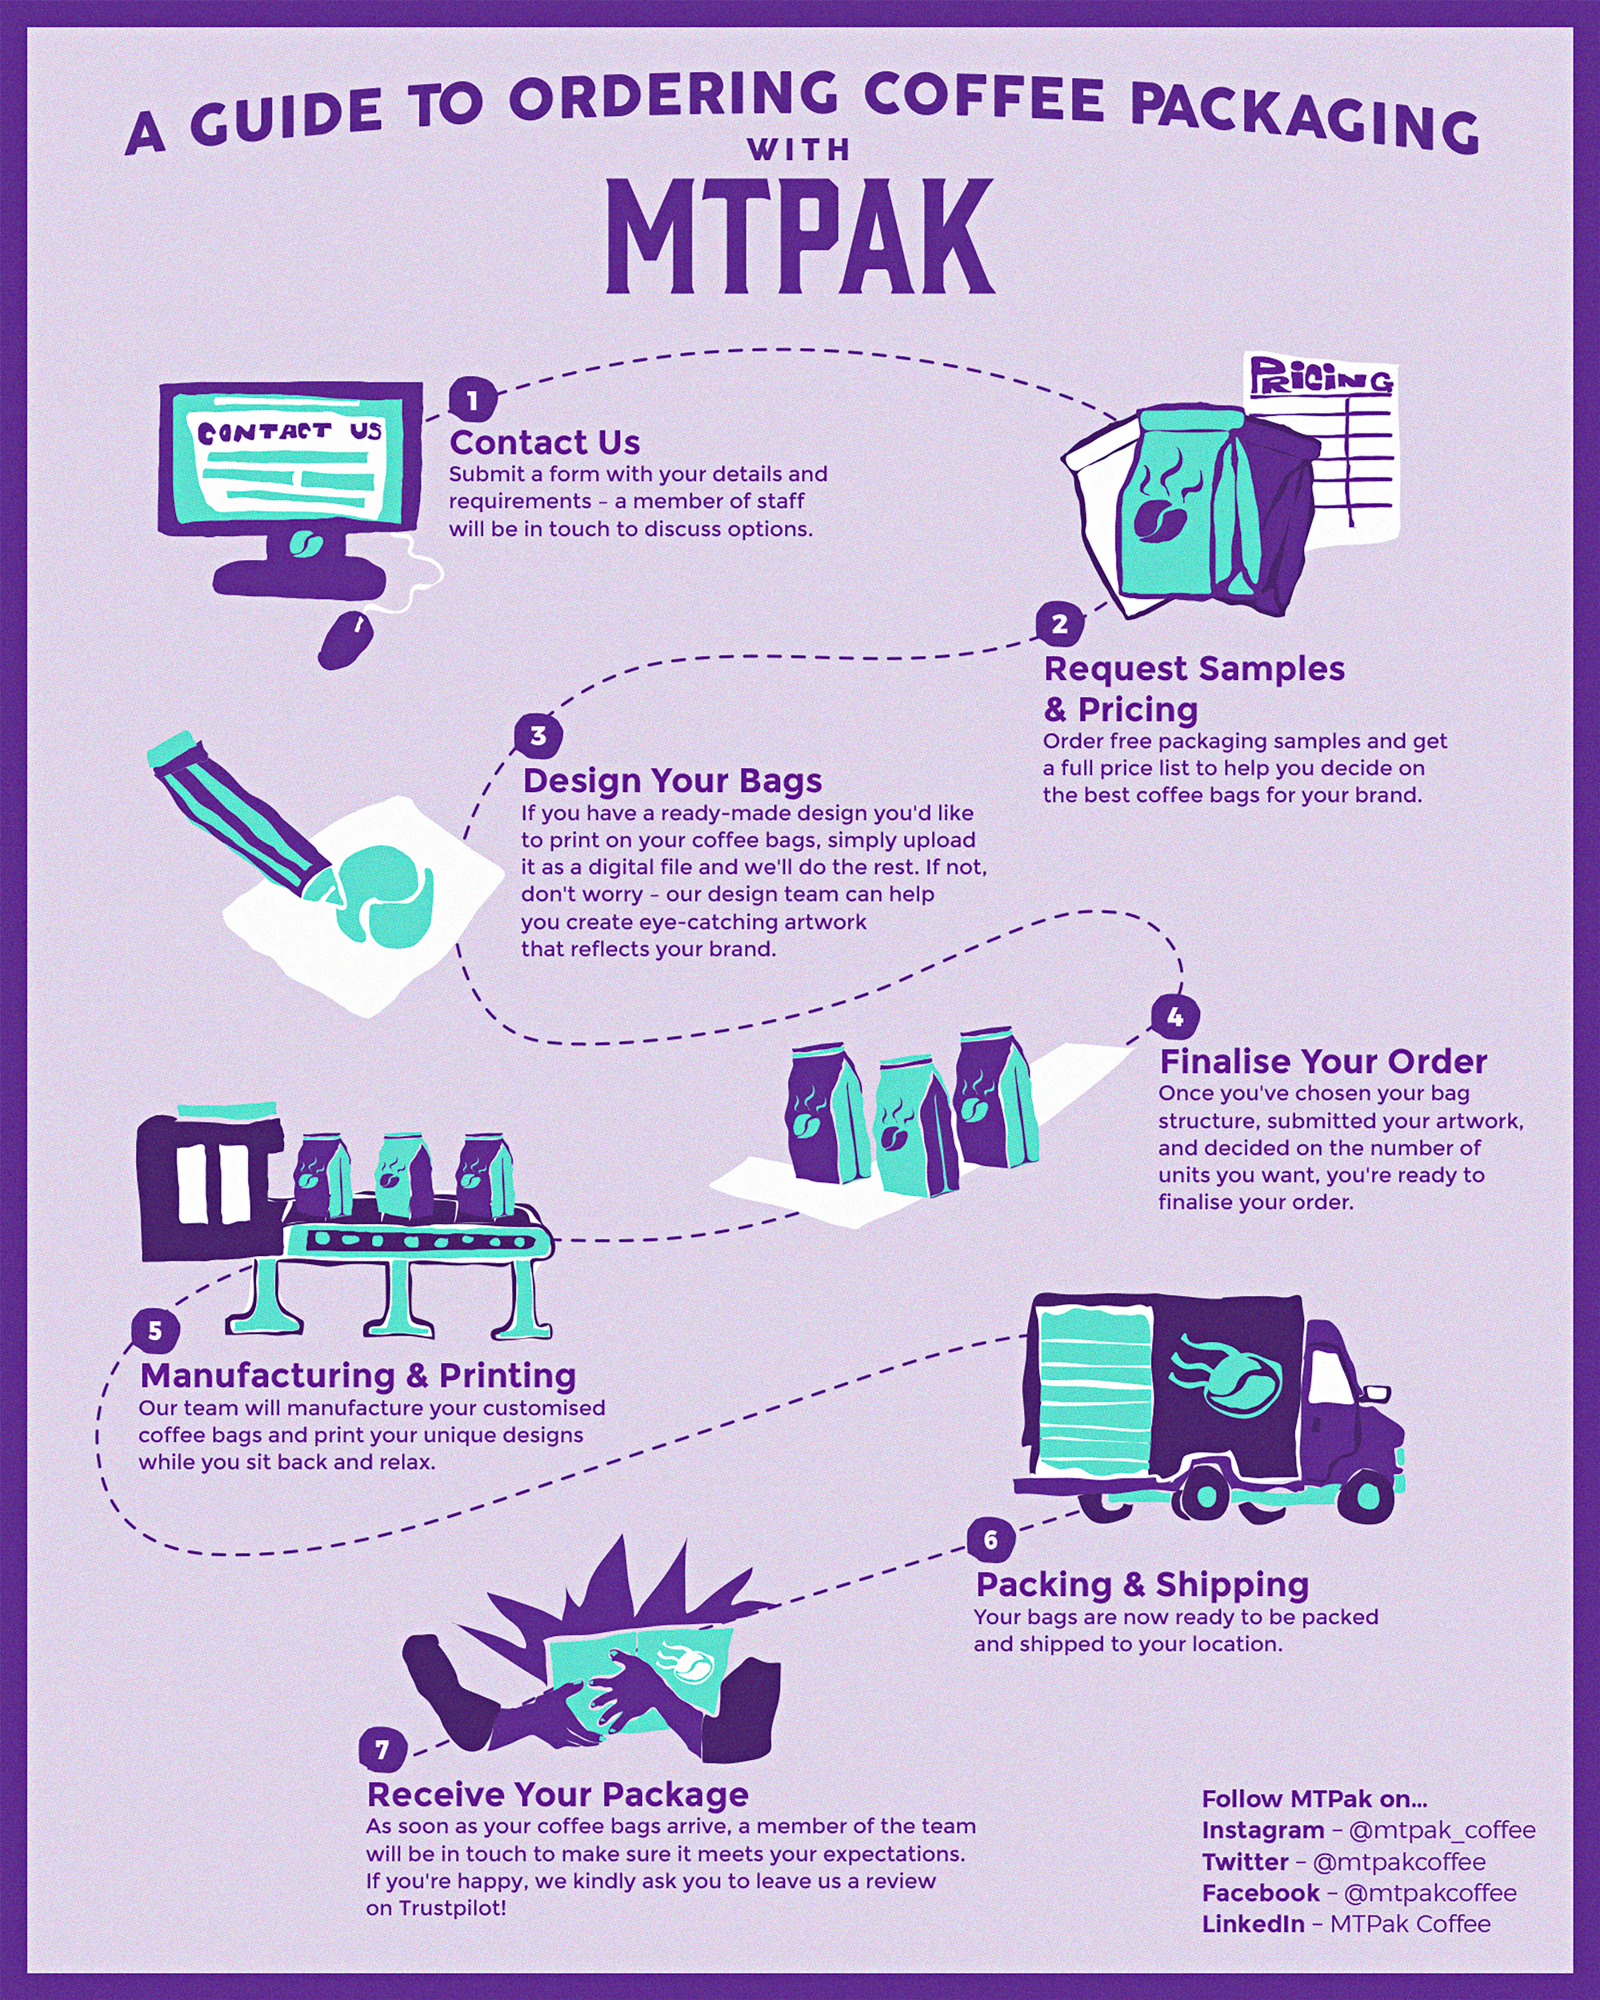 How to order MTPak Coffee packaging